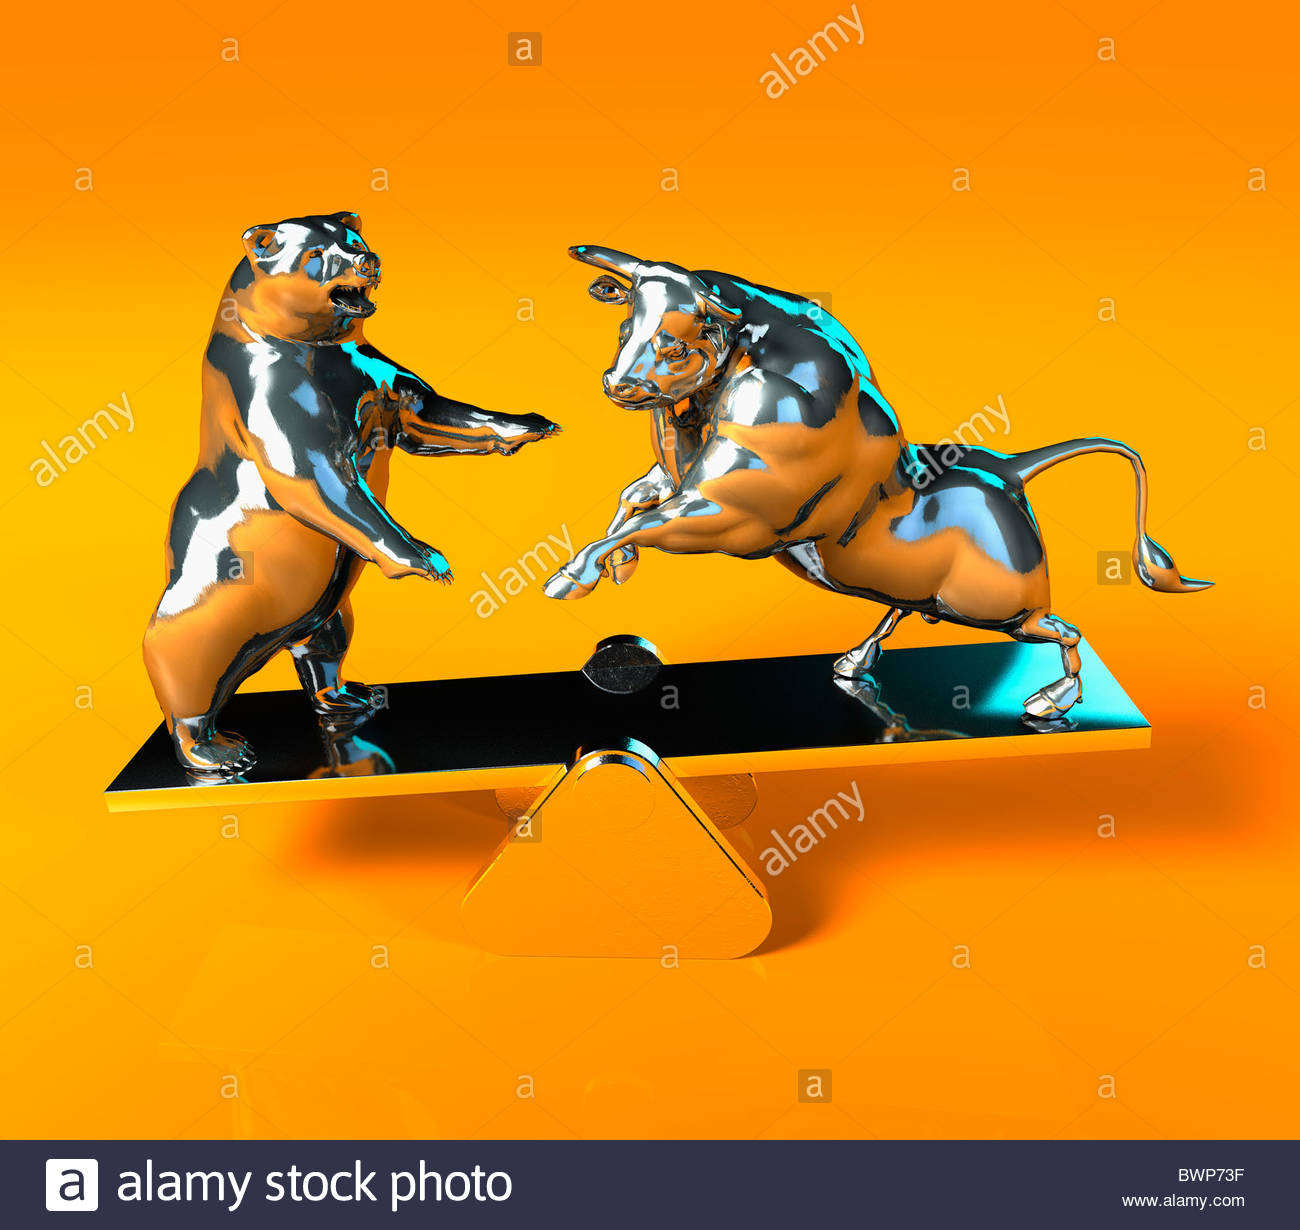 Bull and bear balancing on seesaw - Stock Image